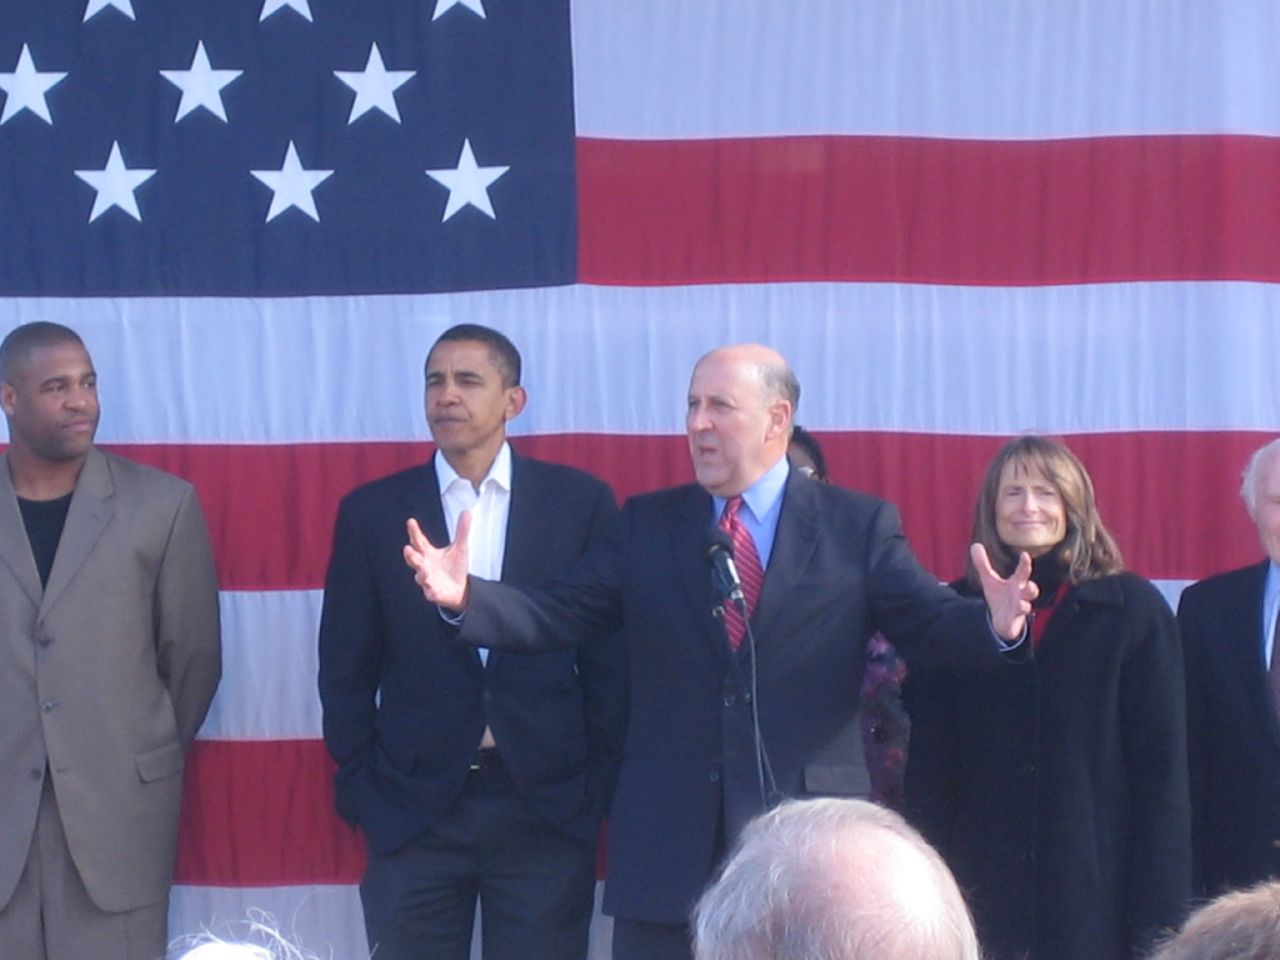 Jim Doyle with Barack Obama.